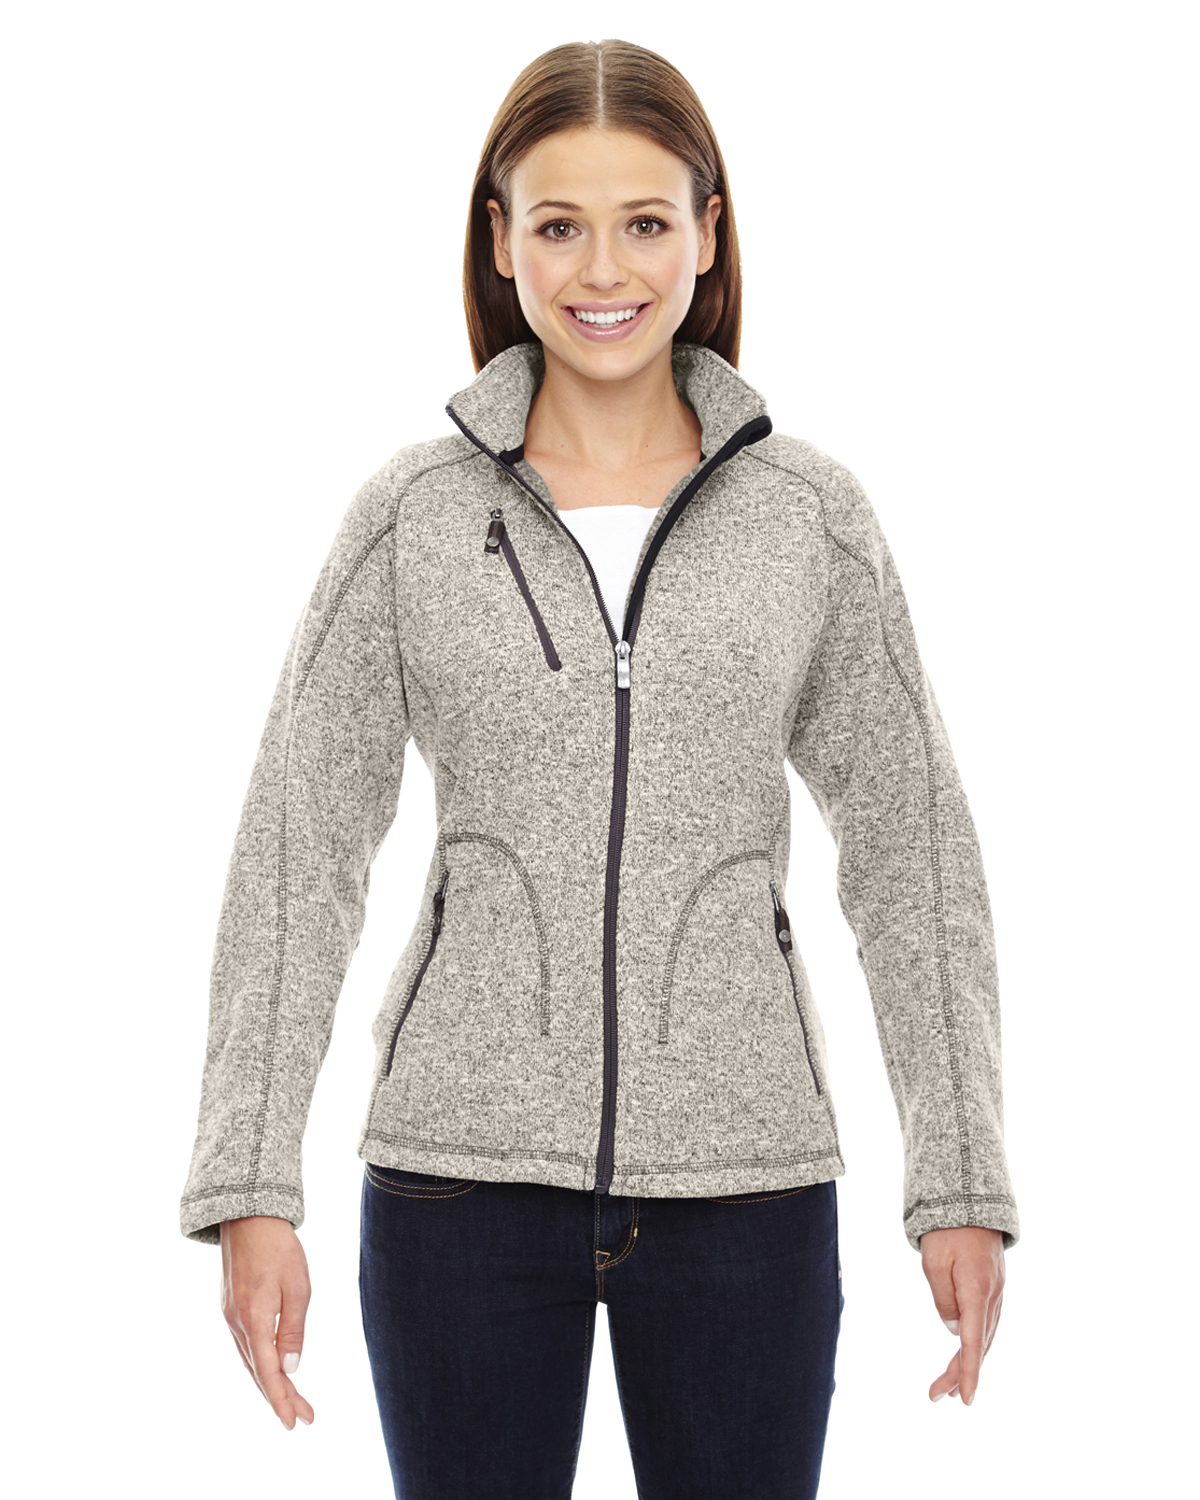 Ash City - 78669, North End Ladies' Peak Sweater Fleece Jacket - Logo Masters International